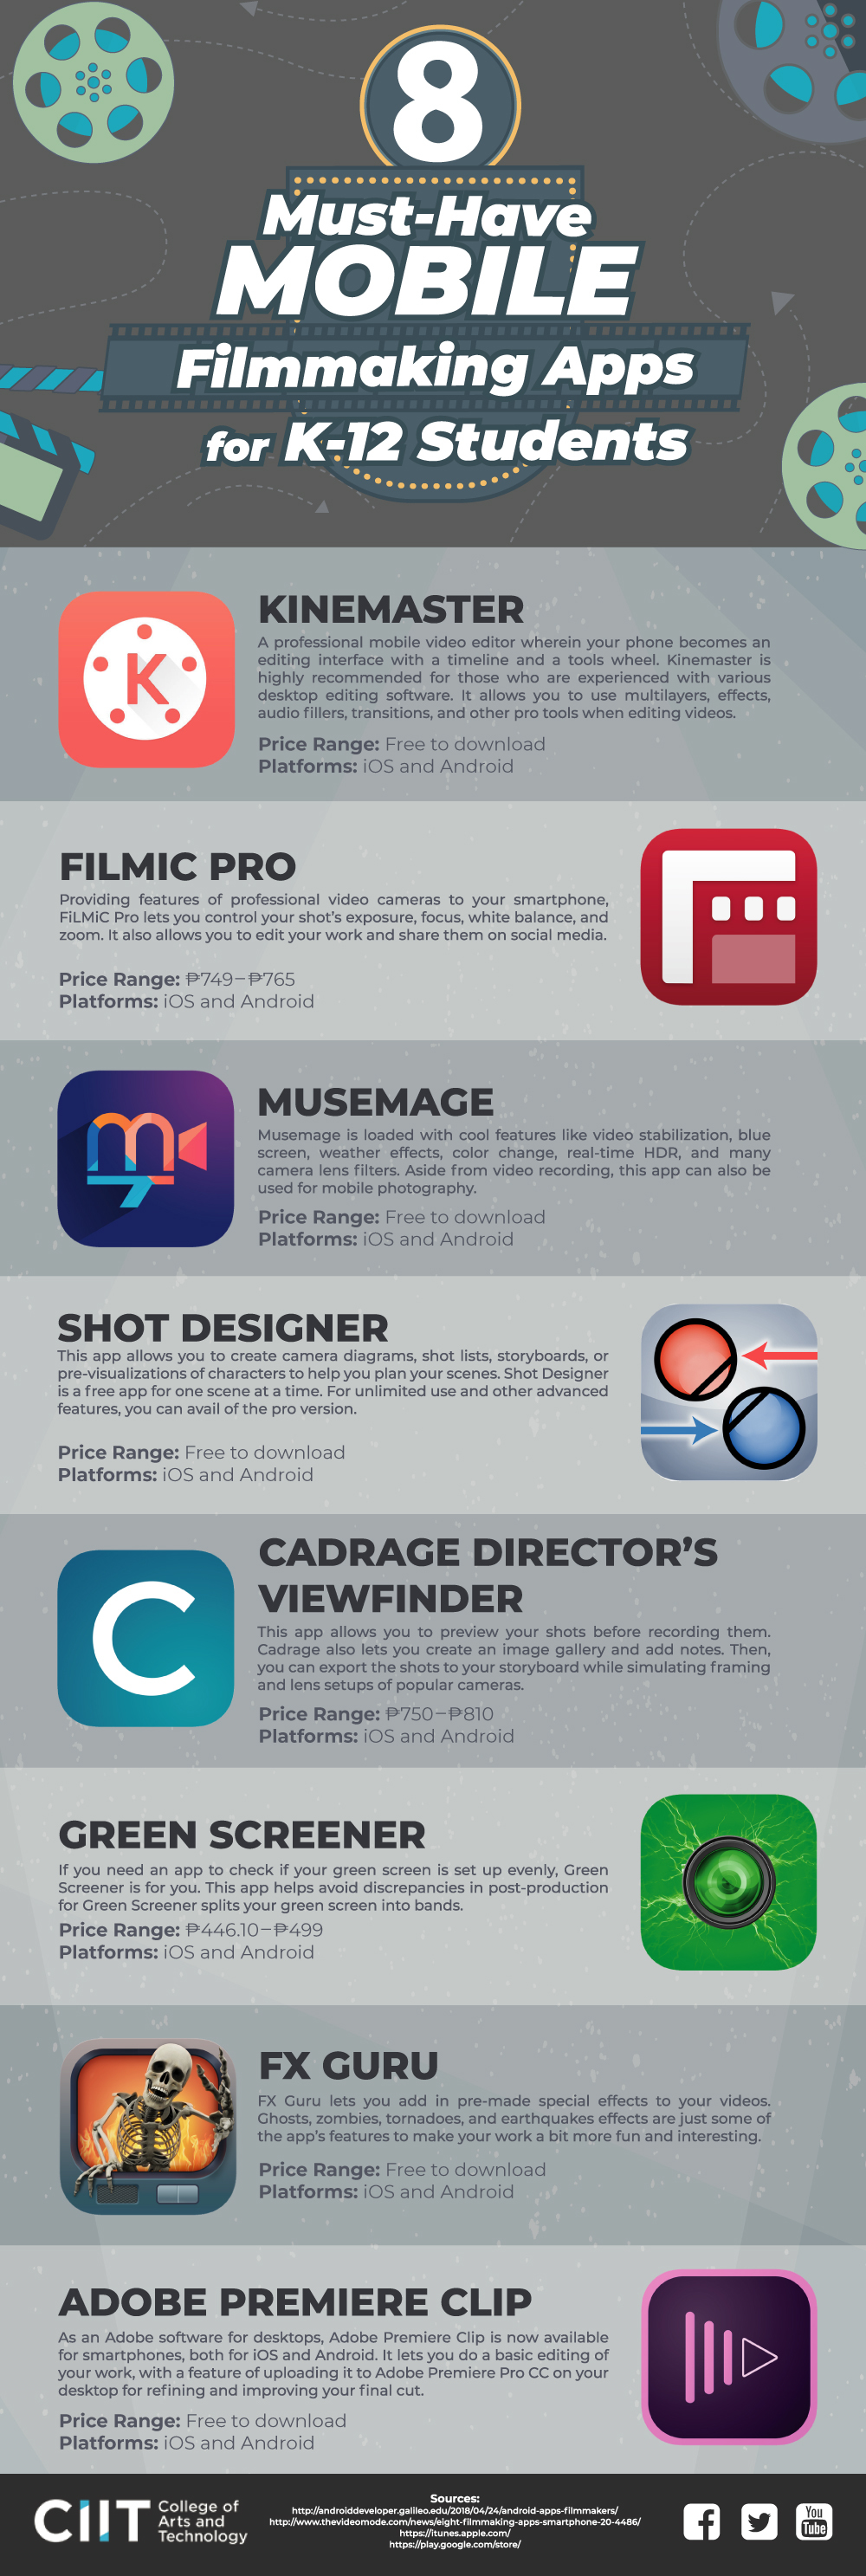 Mobile Filmmaking Apps Infographic